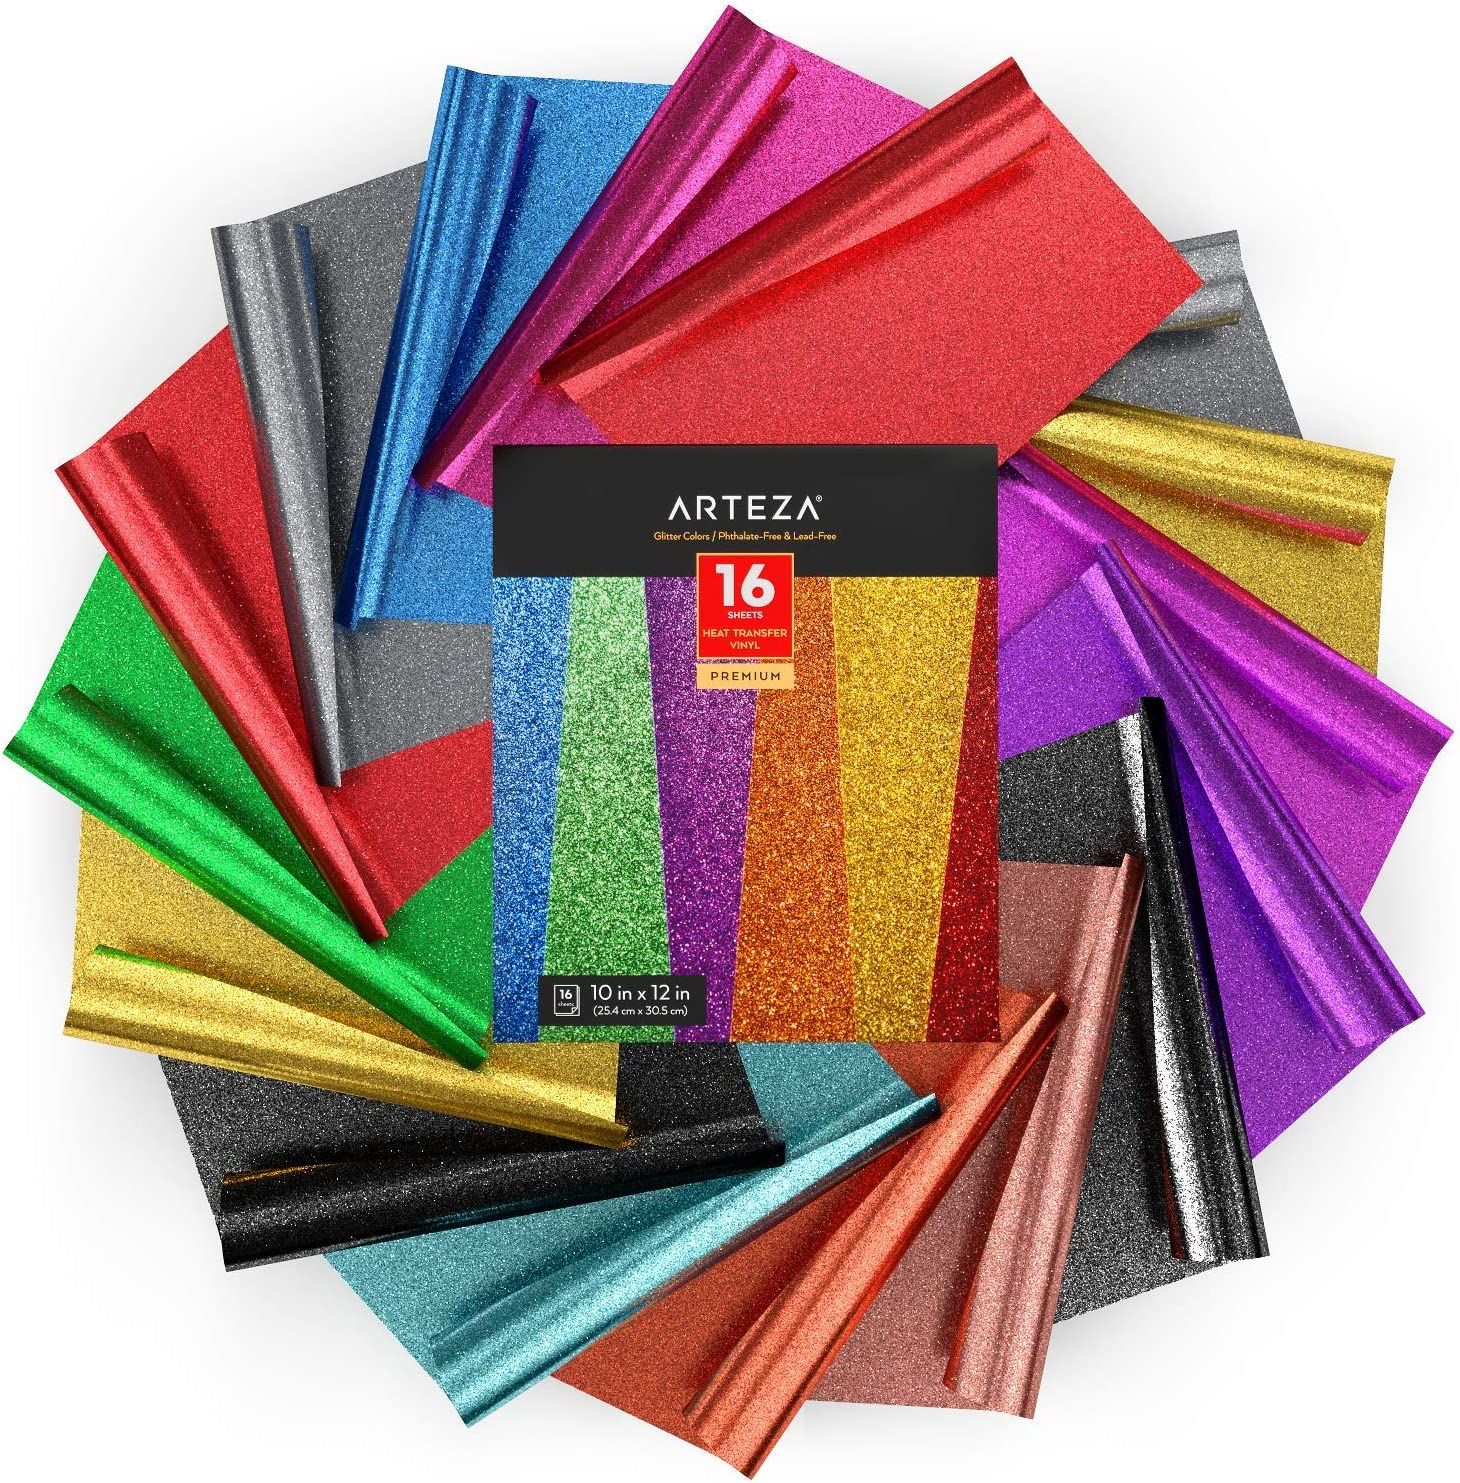 Arteza Glitter Heat Transfer Vinyl, 16 Iron On Vinyl Sheets, 10x12 Inches, Assorted Colors, Flexible & Easy to Weed, Use wolors, Flexible & Easy to Weed, Use with Any Craft Cutting Machine, Boxed: Industrial & Scientific